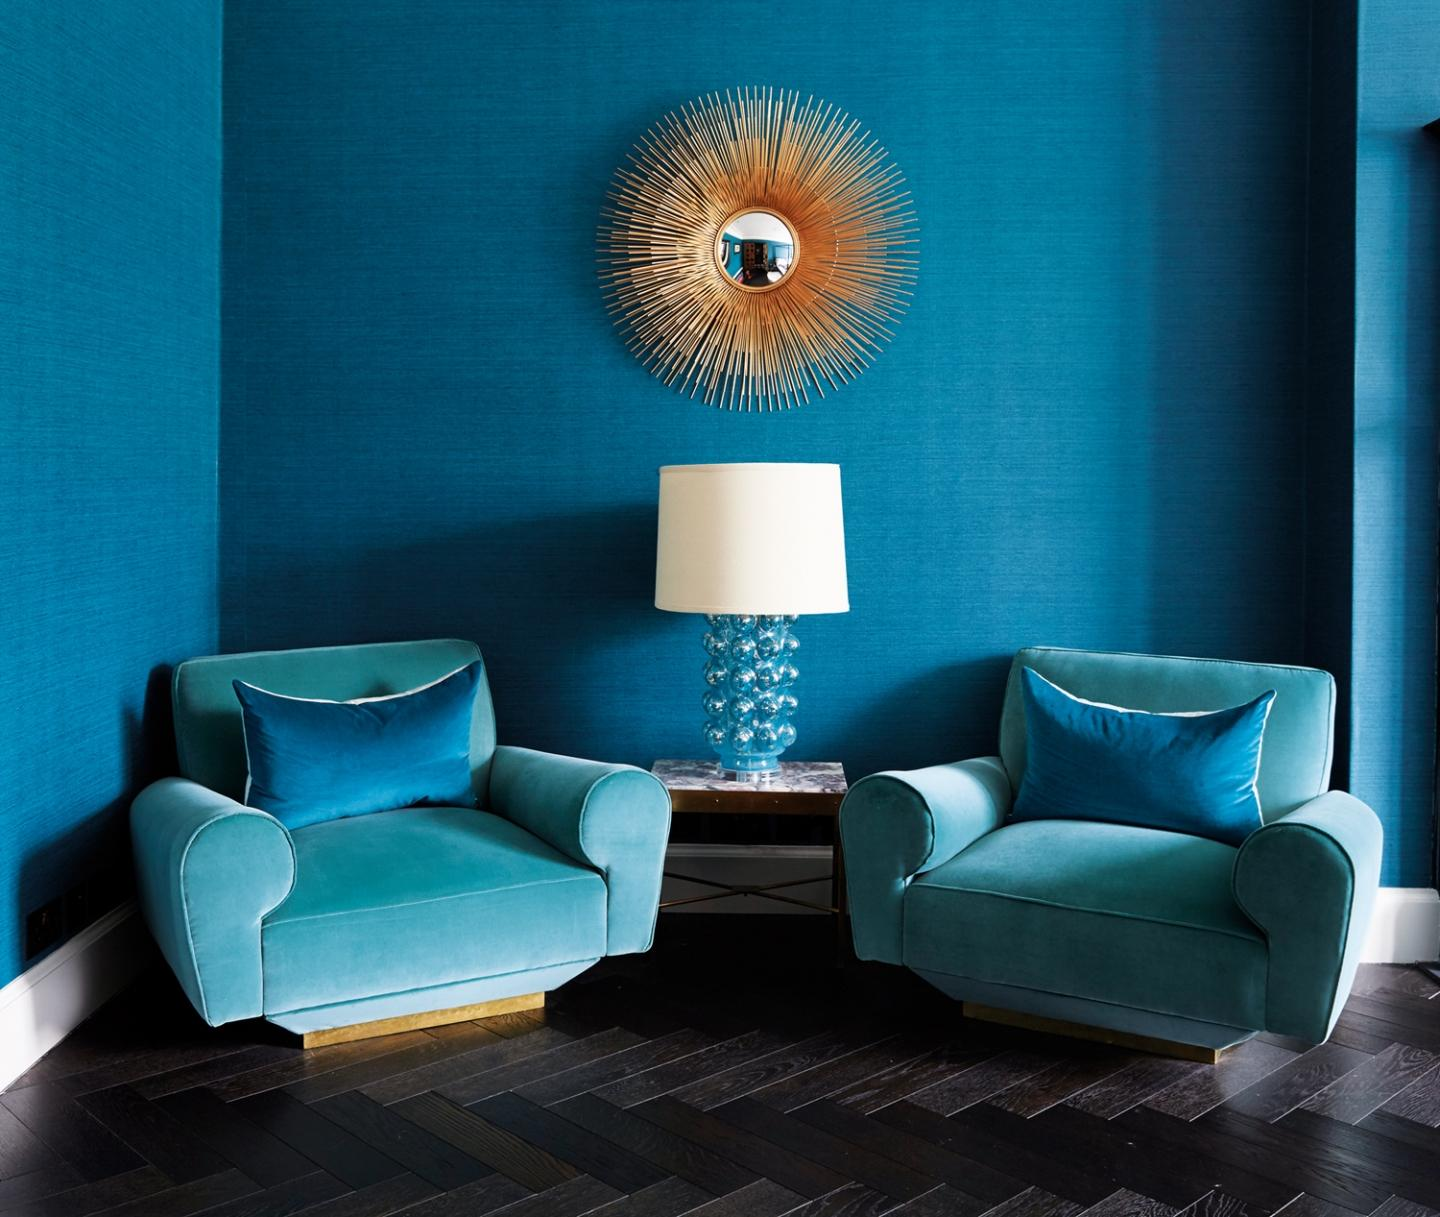 Shades of turquoise adorn a quaint reading area